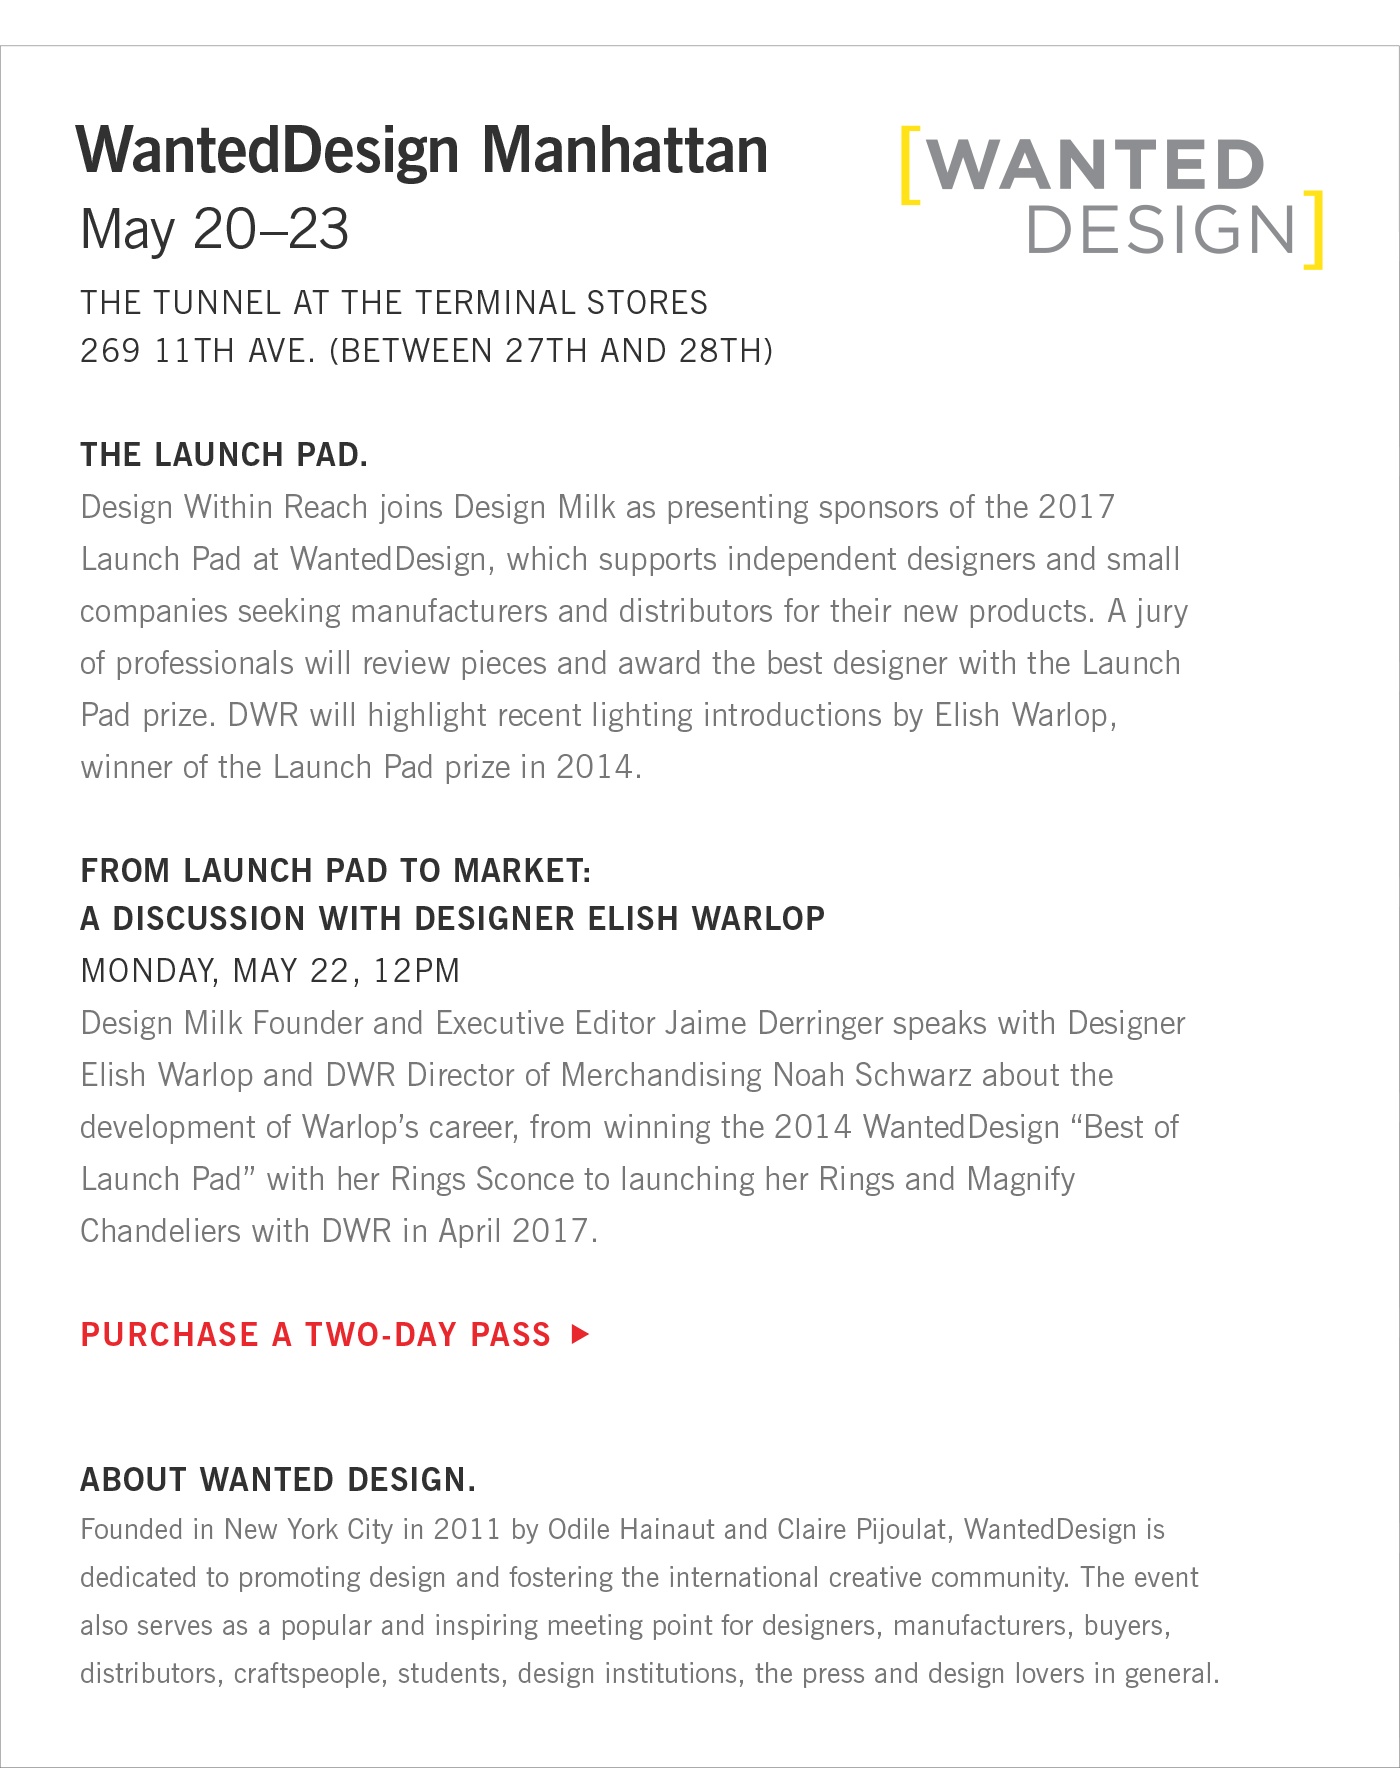 Purchase a Two Day Pass to WantedDesign Manhattan